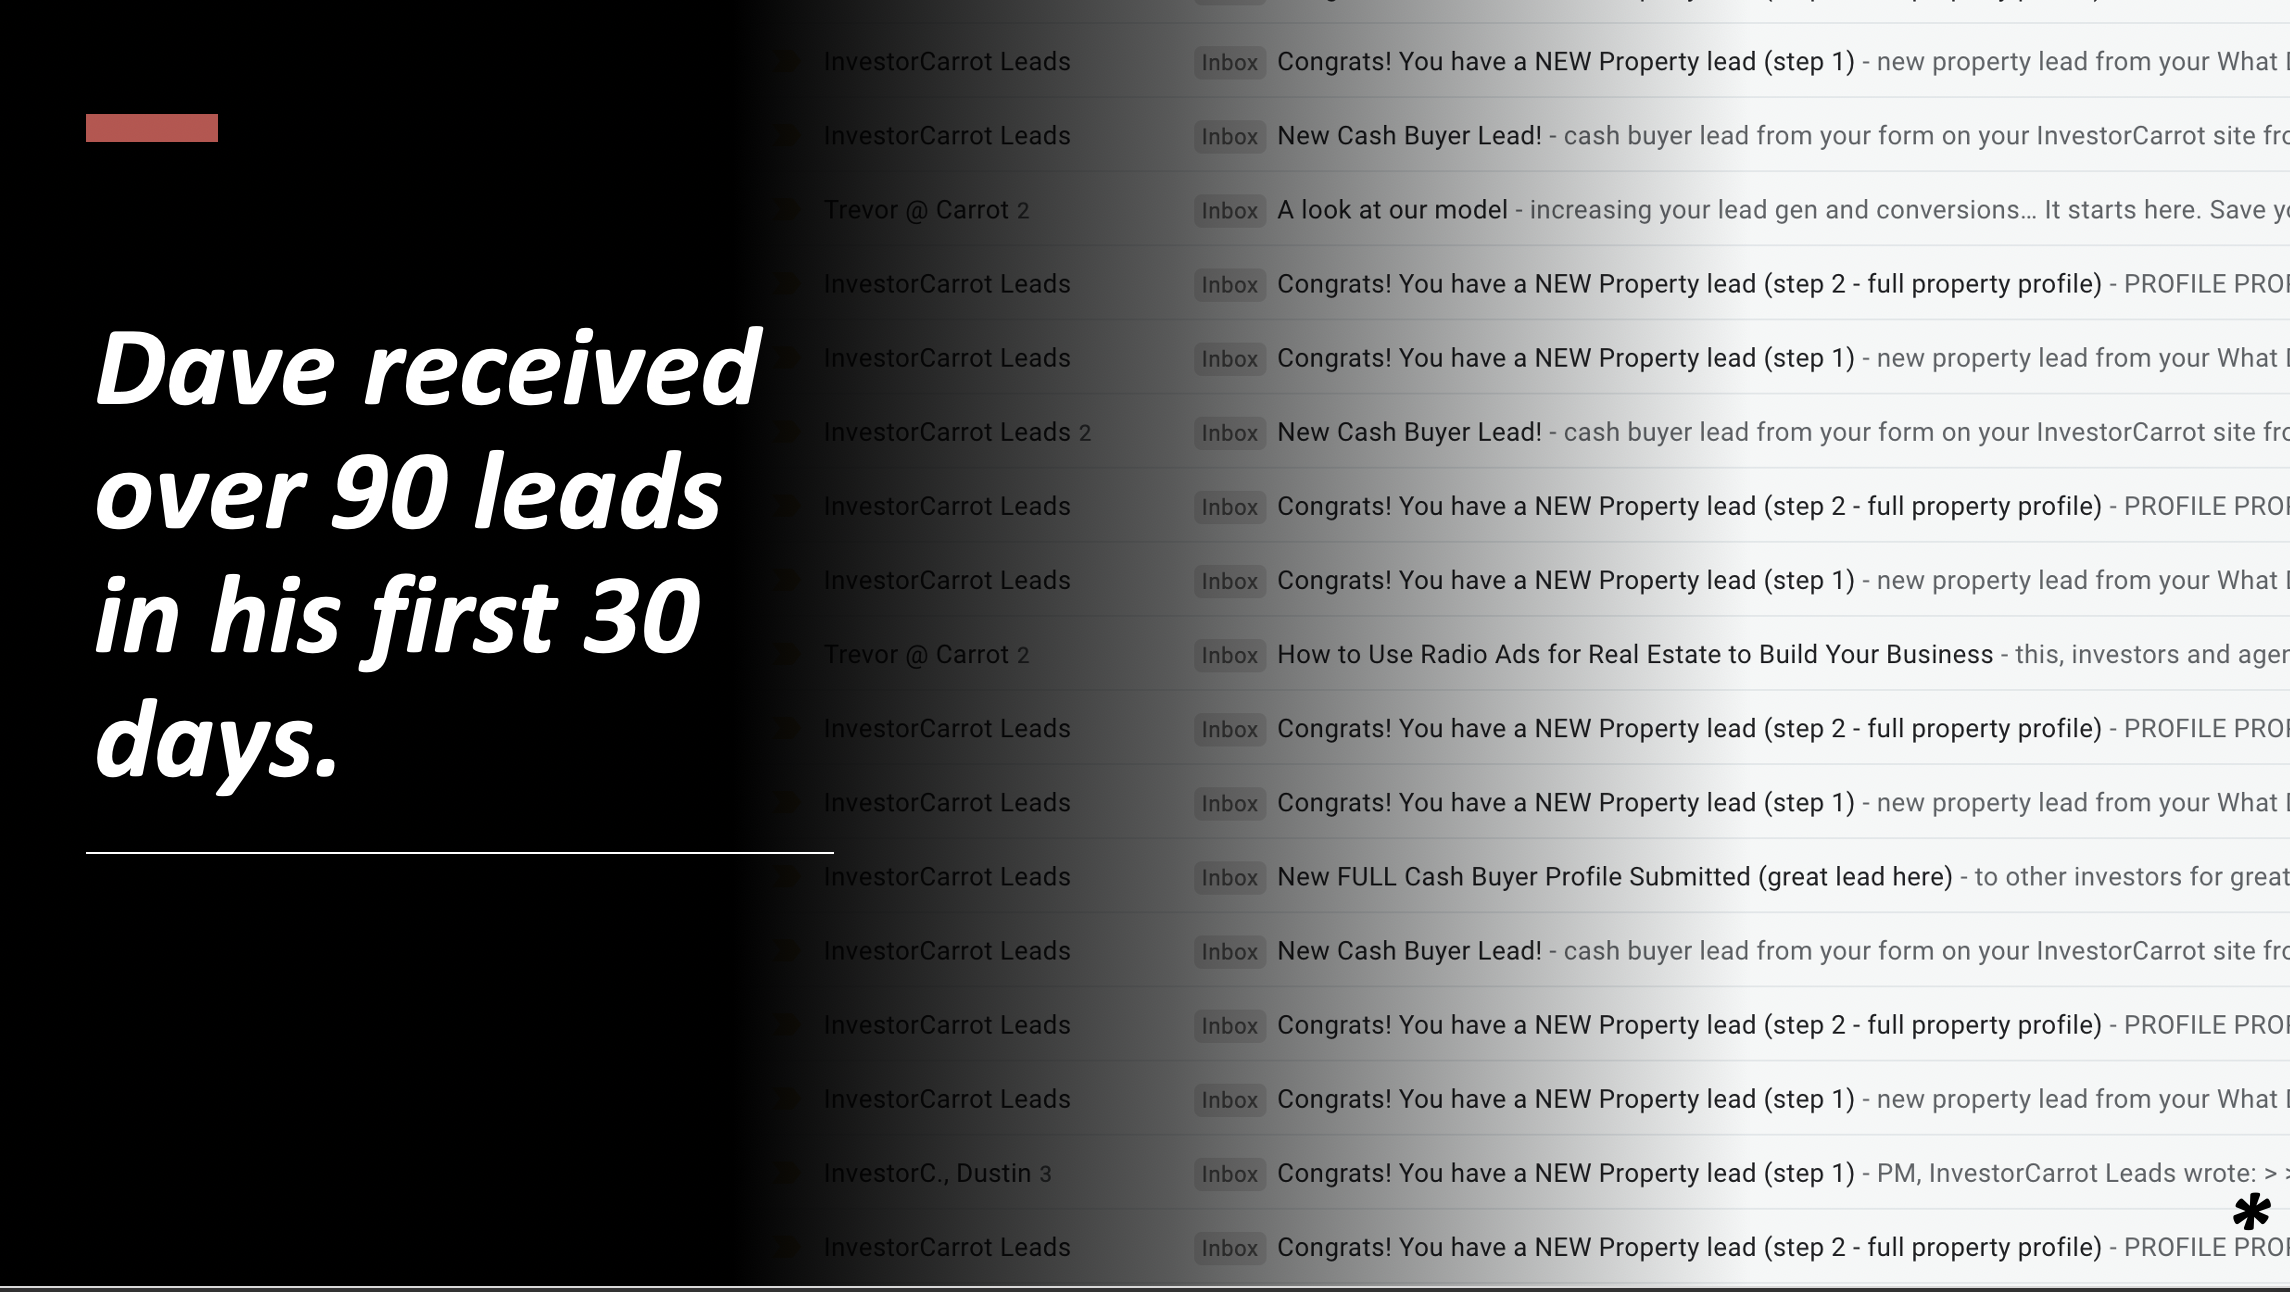 Dave received 90 Leads